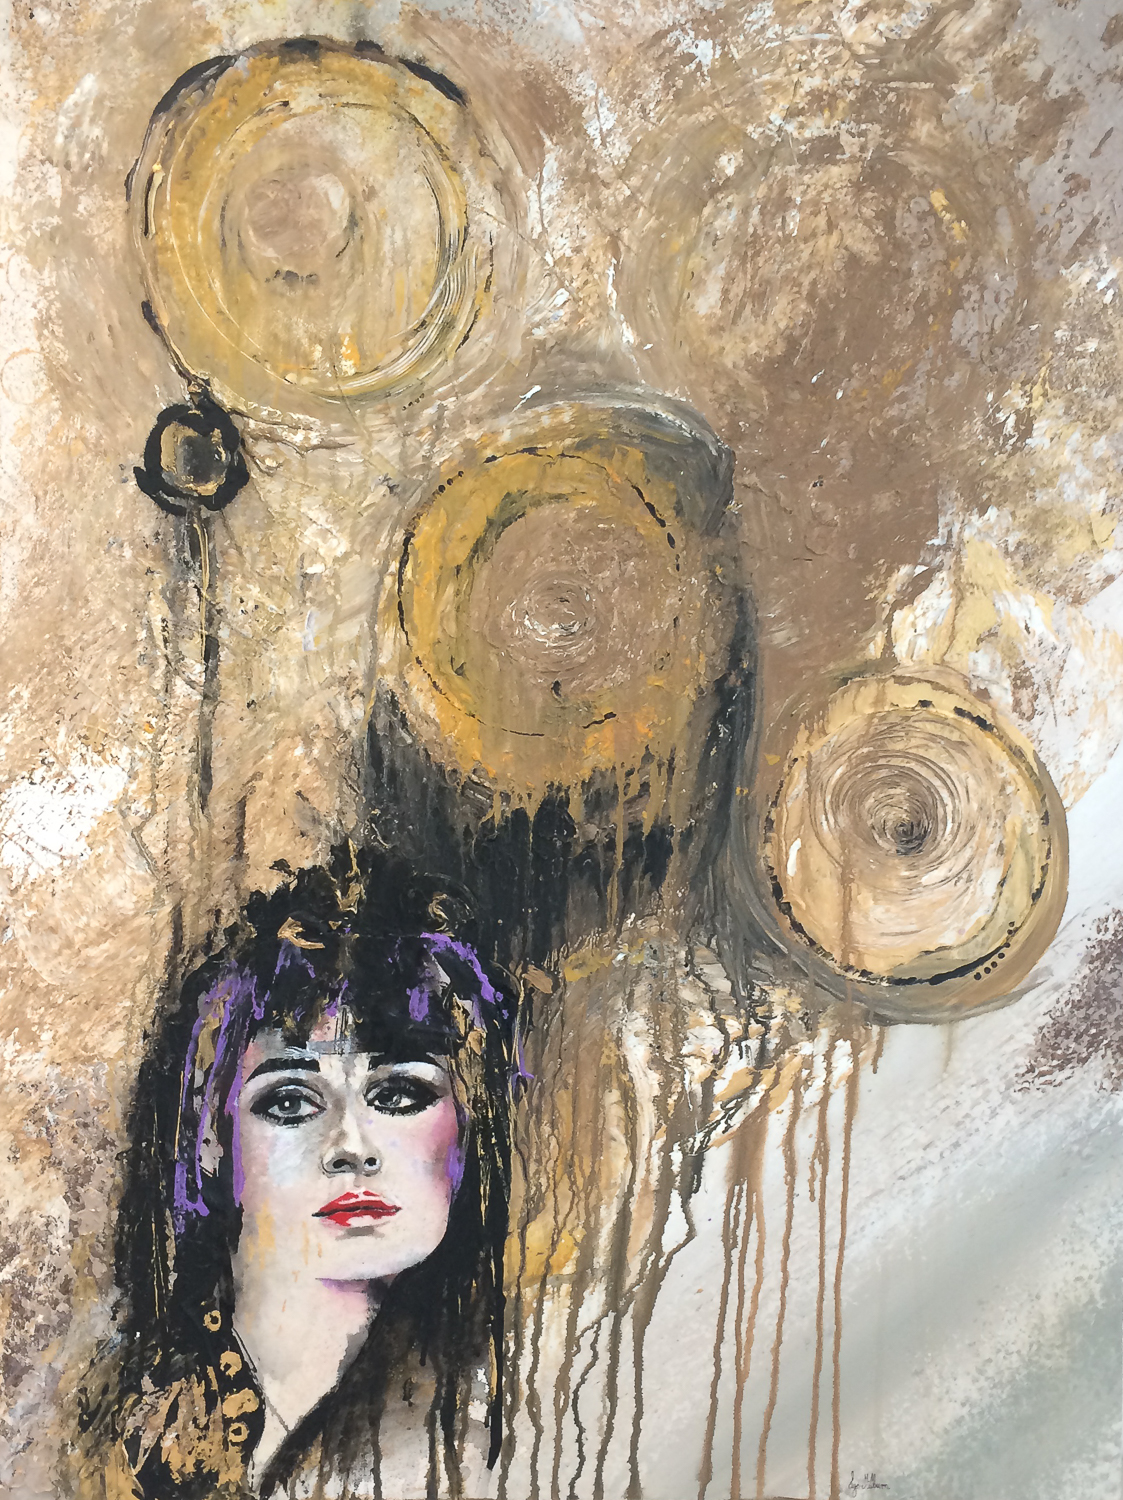 Painting of a woman with abstract balloons above her